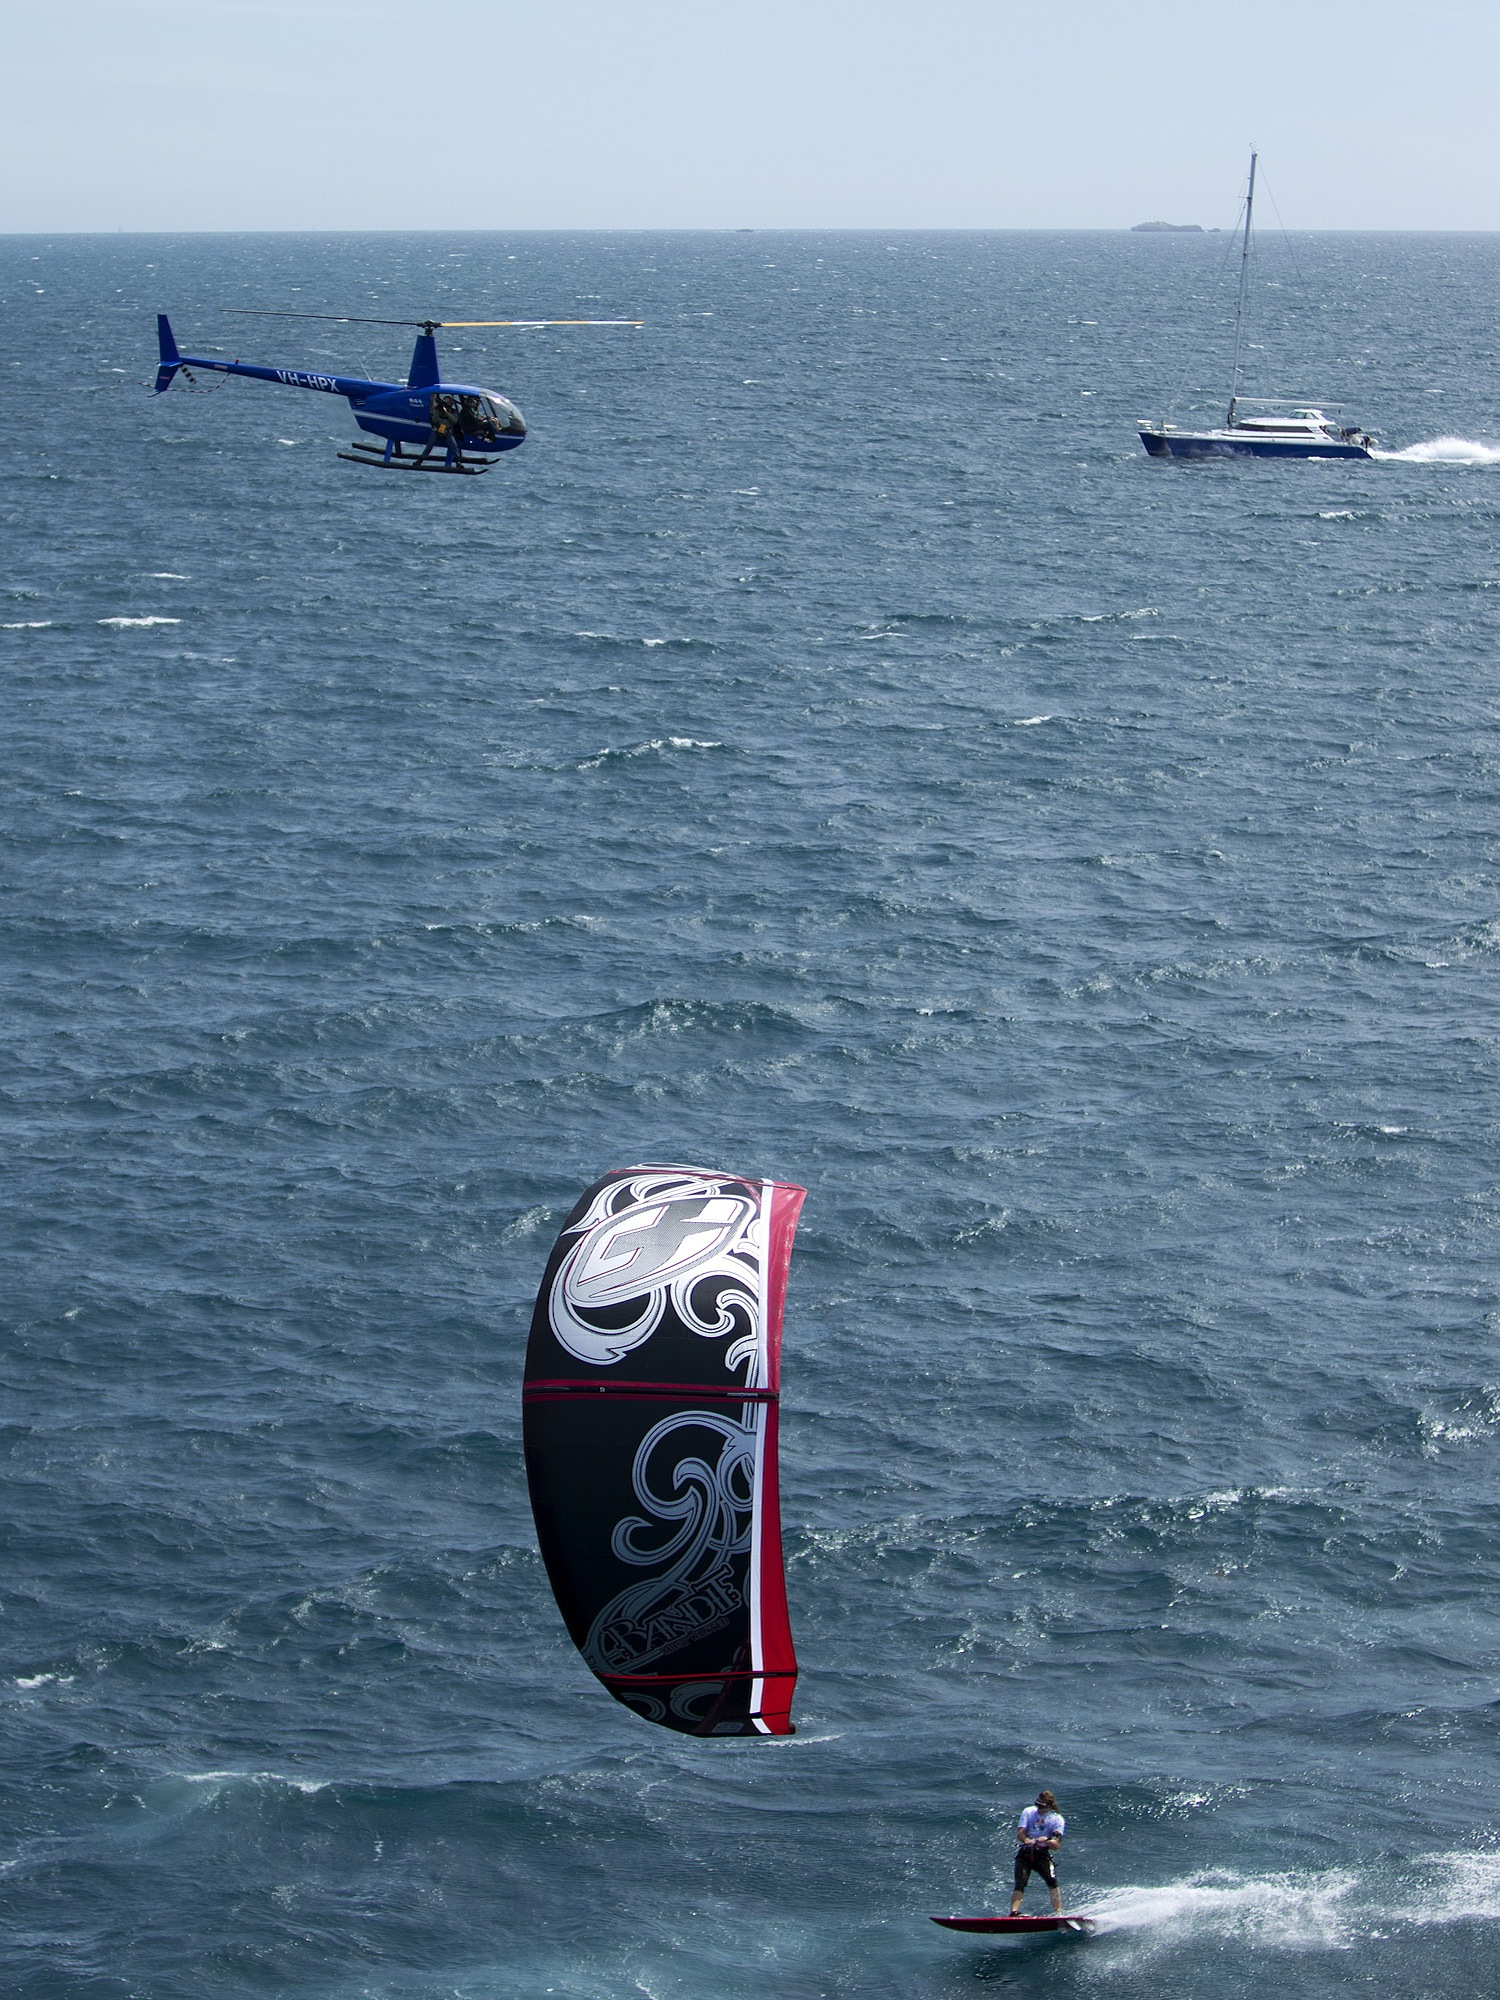 Red Bull Lighthouse to Leighton, Perth, Australie - Crédit Photo : COLIN / BIRDSEYE VIEW